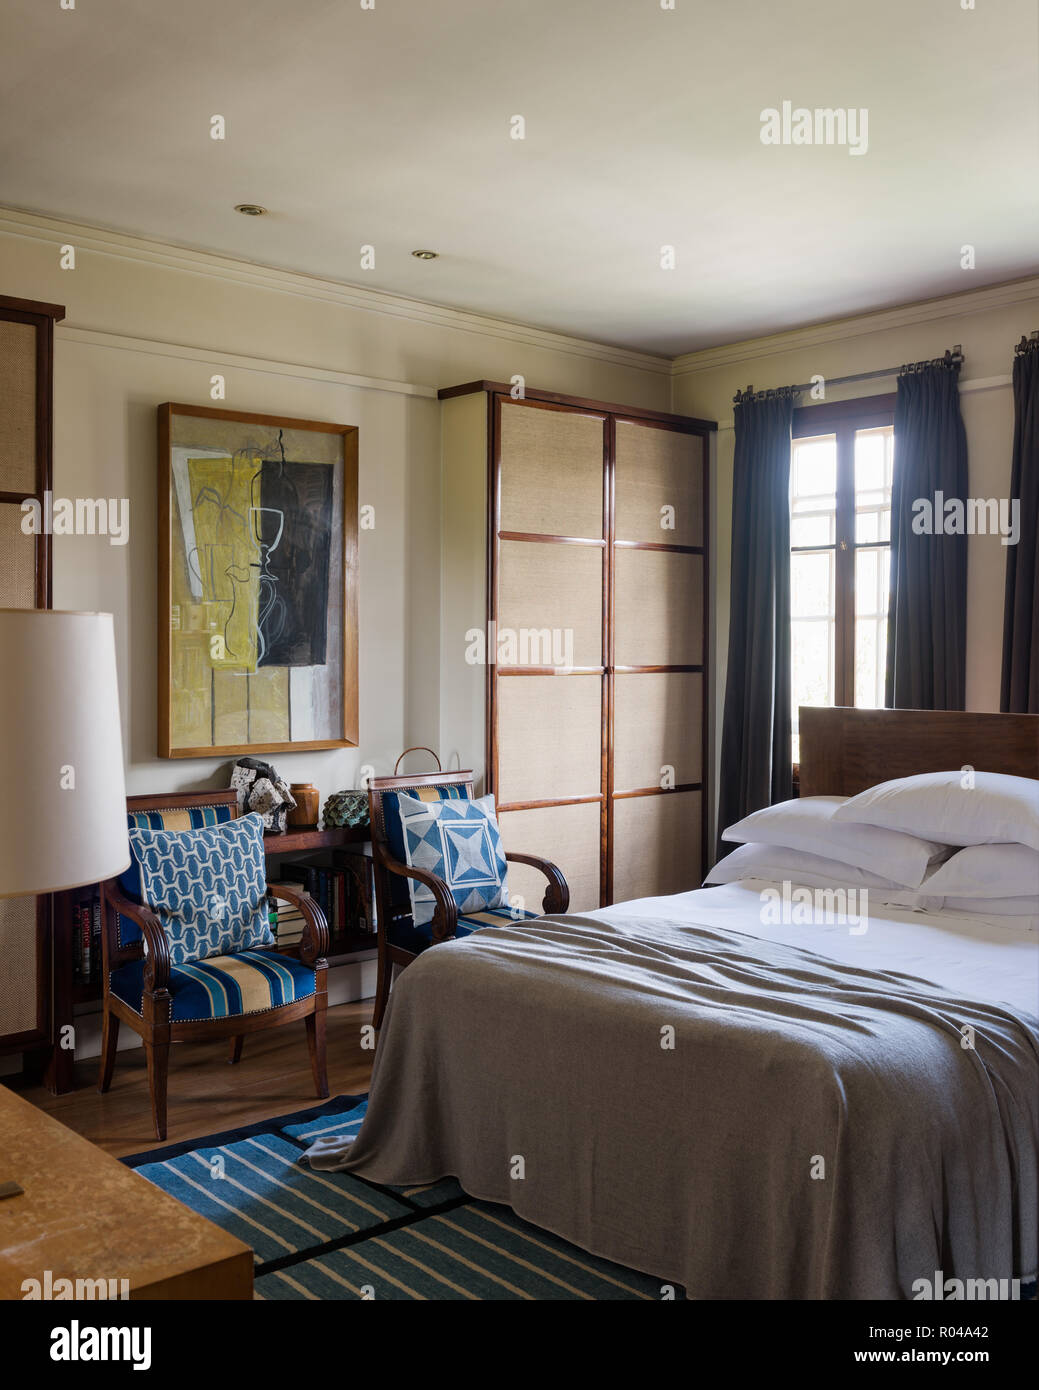 Bedroom with matching armchairs Stock Photo: 223830546 - Alamy